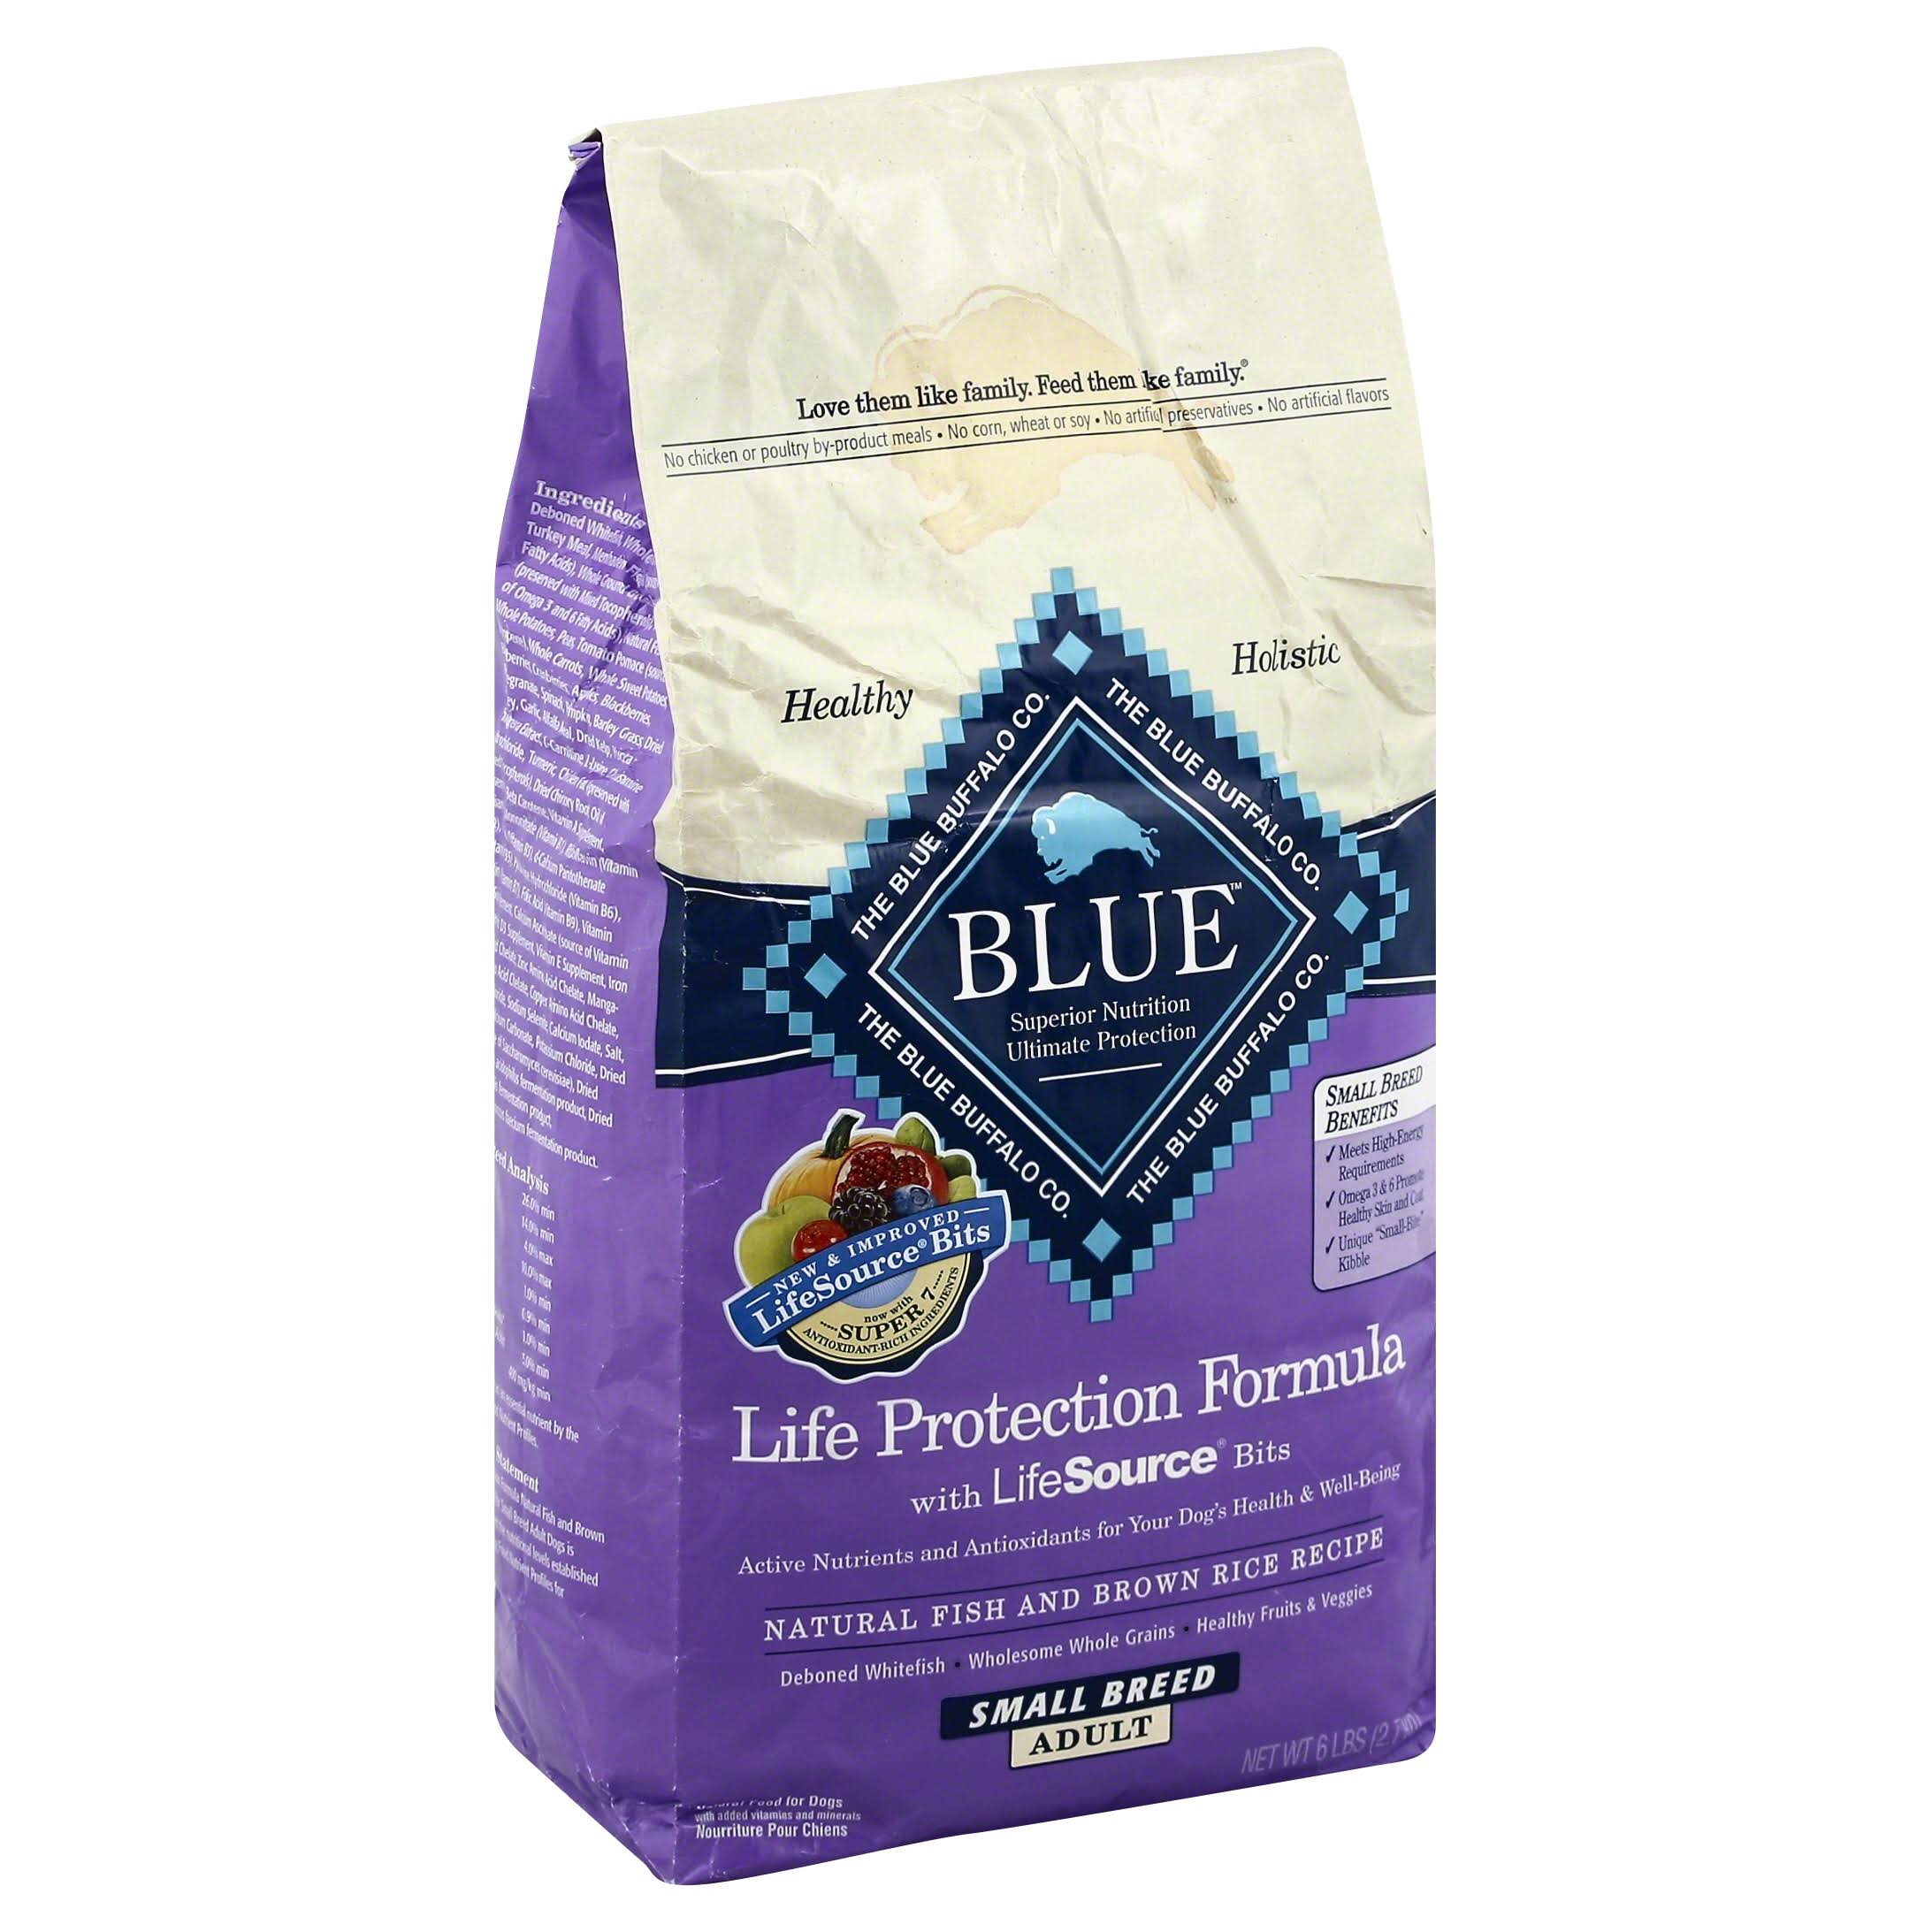 Blue Food for Dogs, Natural, Life Protection Formula, Small Breed, Adult, Natural Fish and Brown Rice Recipe - 6 lb